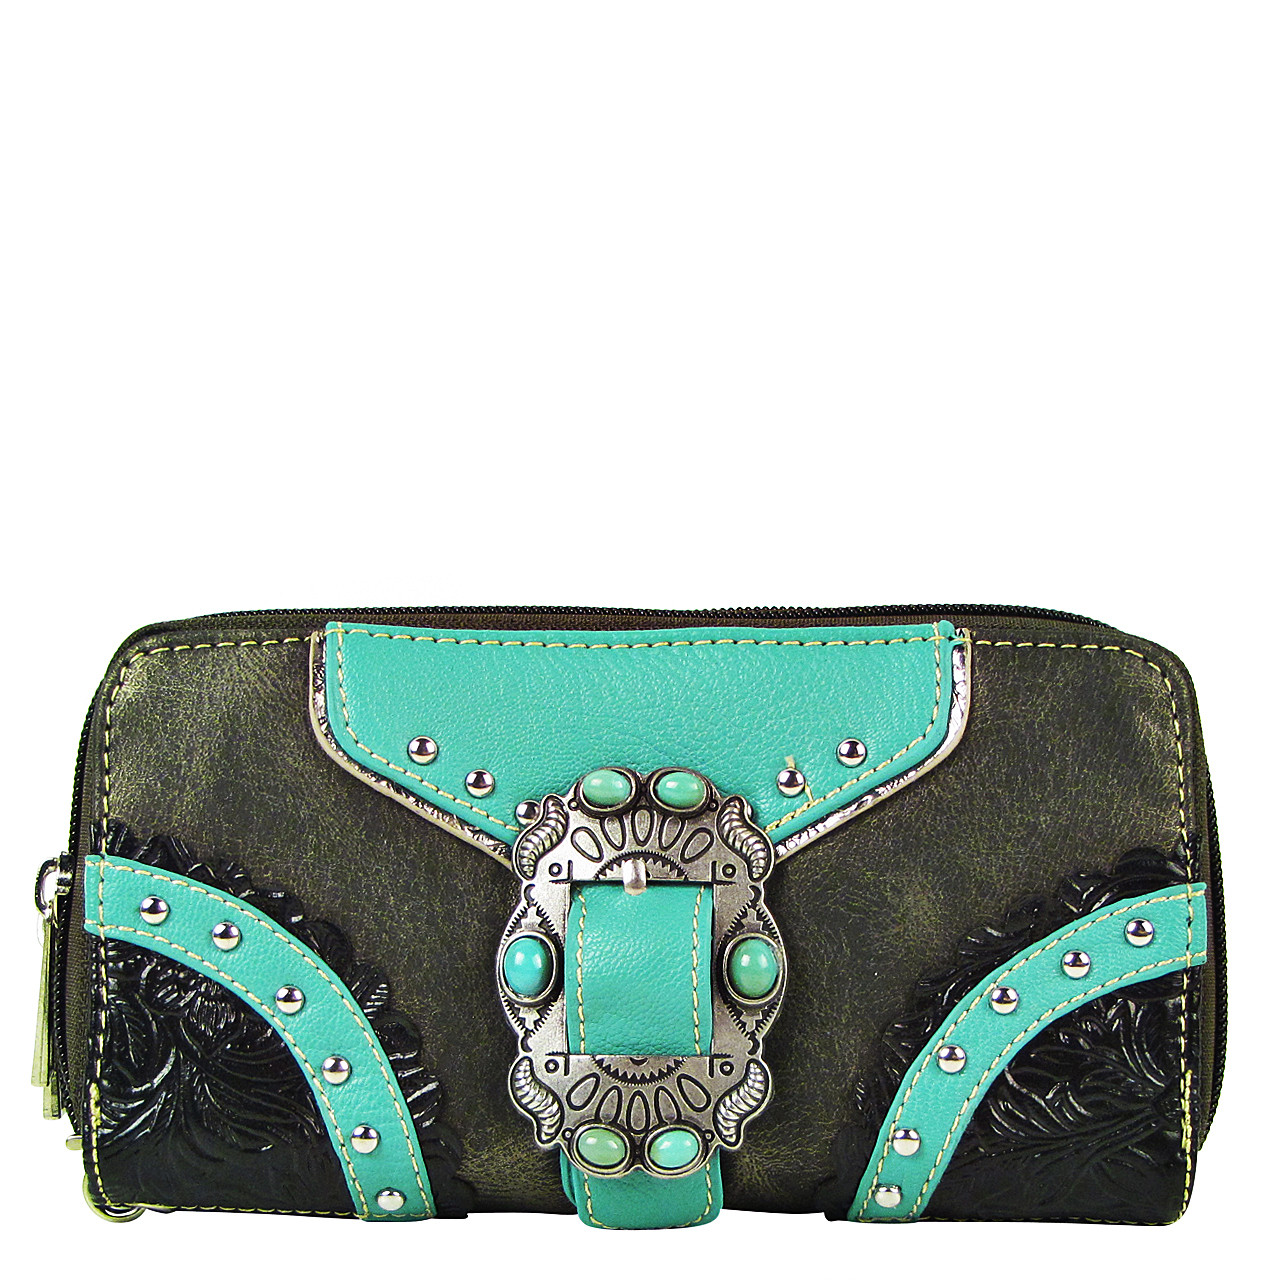 GRAY STUDDED BUCKLE LOOK ZIPPER WALLET CB3-1210GRY